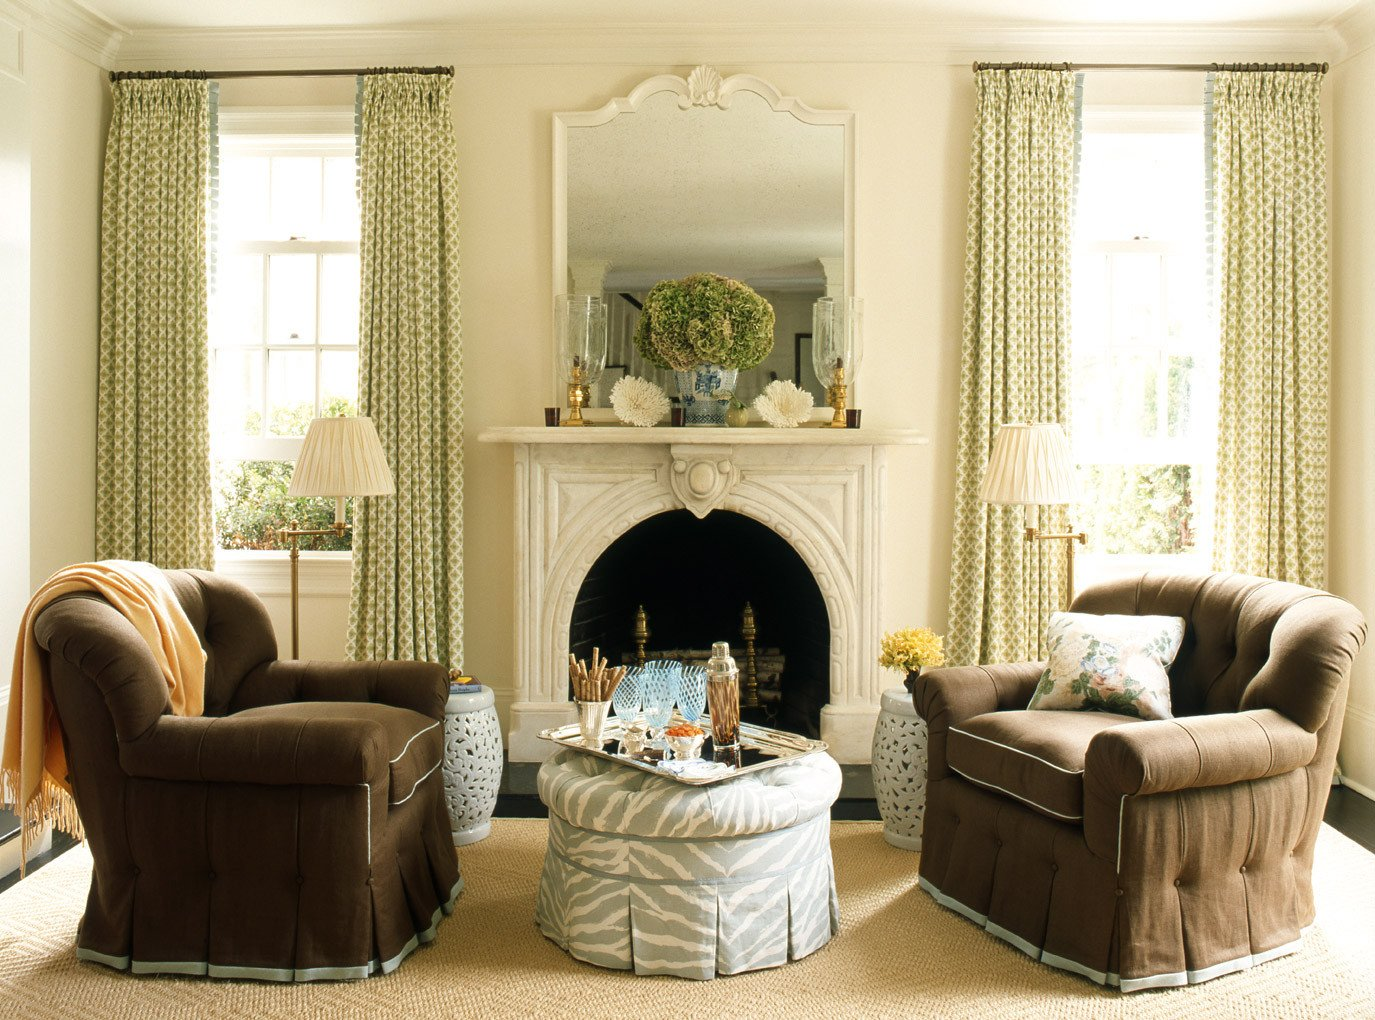 Traditional Chic Living Room How to Decorate Series Finding Your Decorating Style